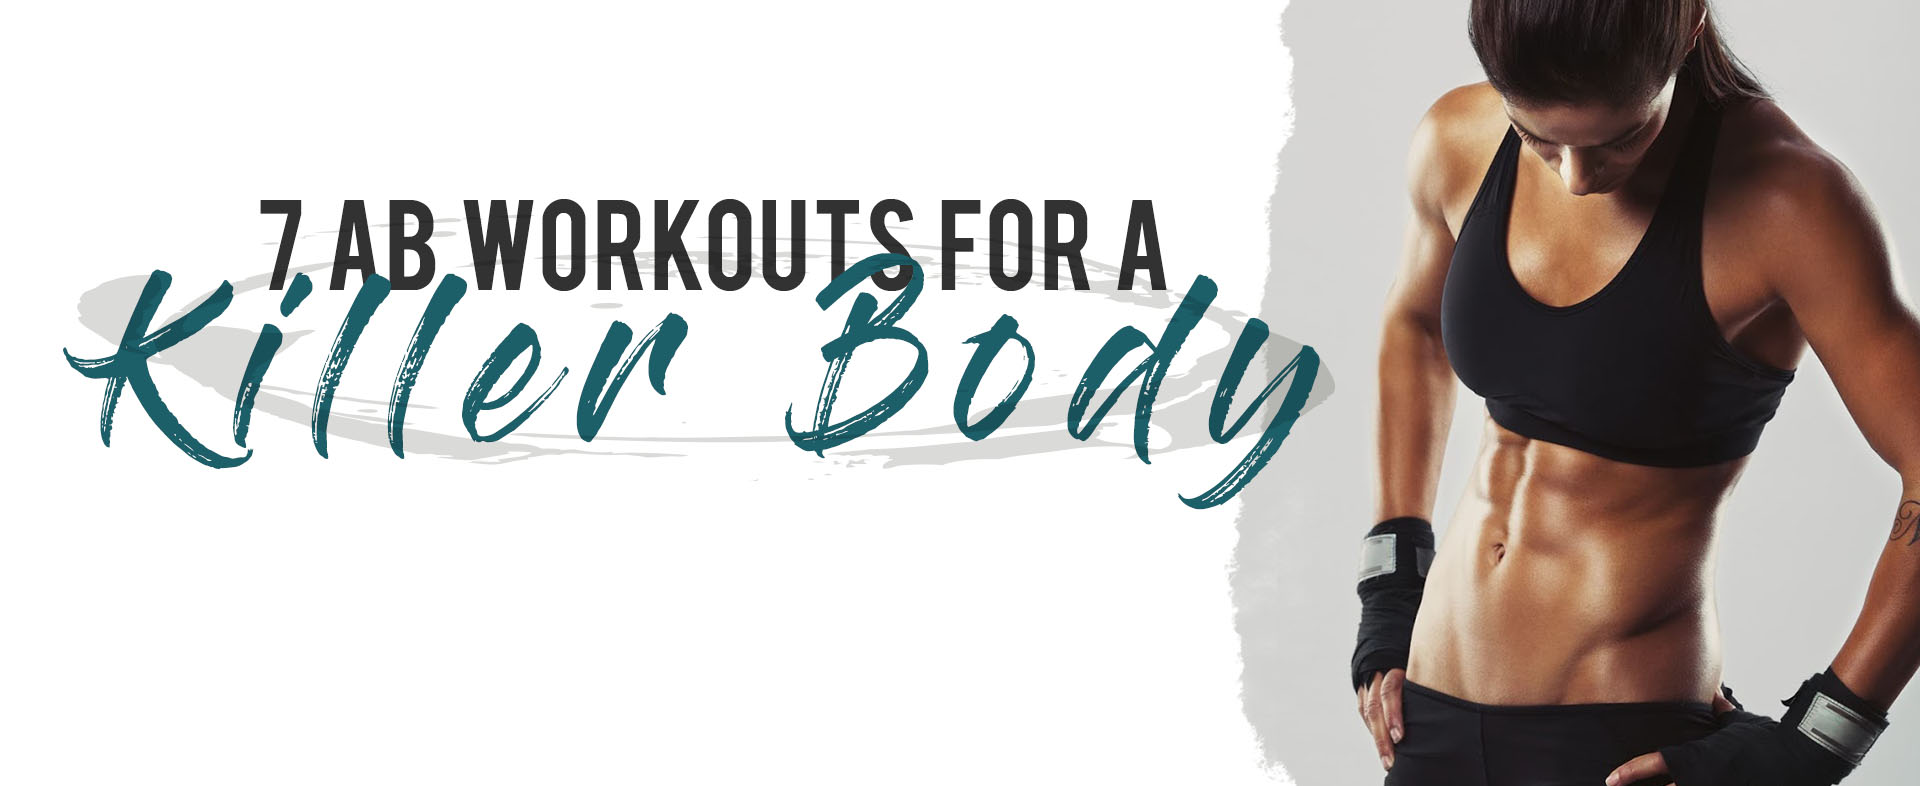 7 AB Workout For a Killer Body